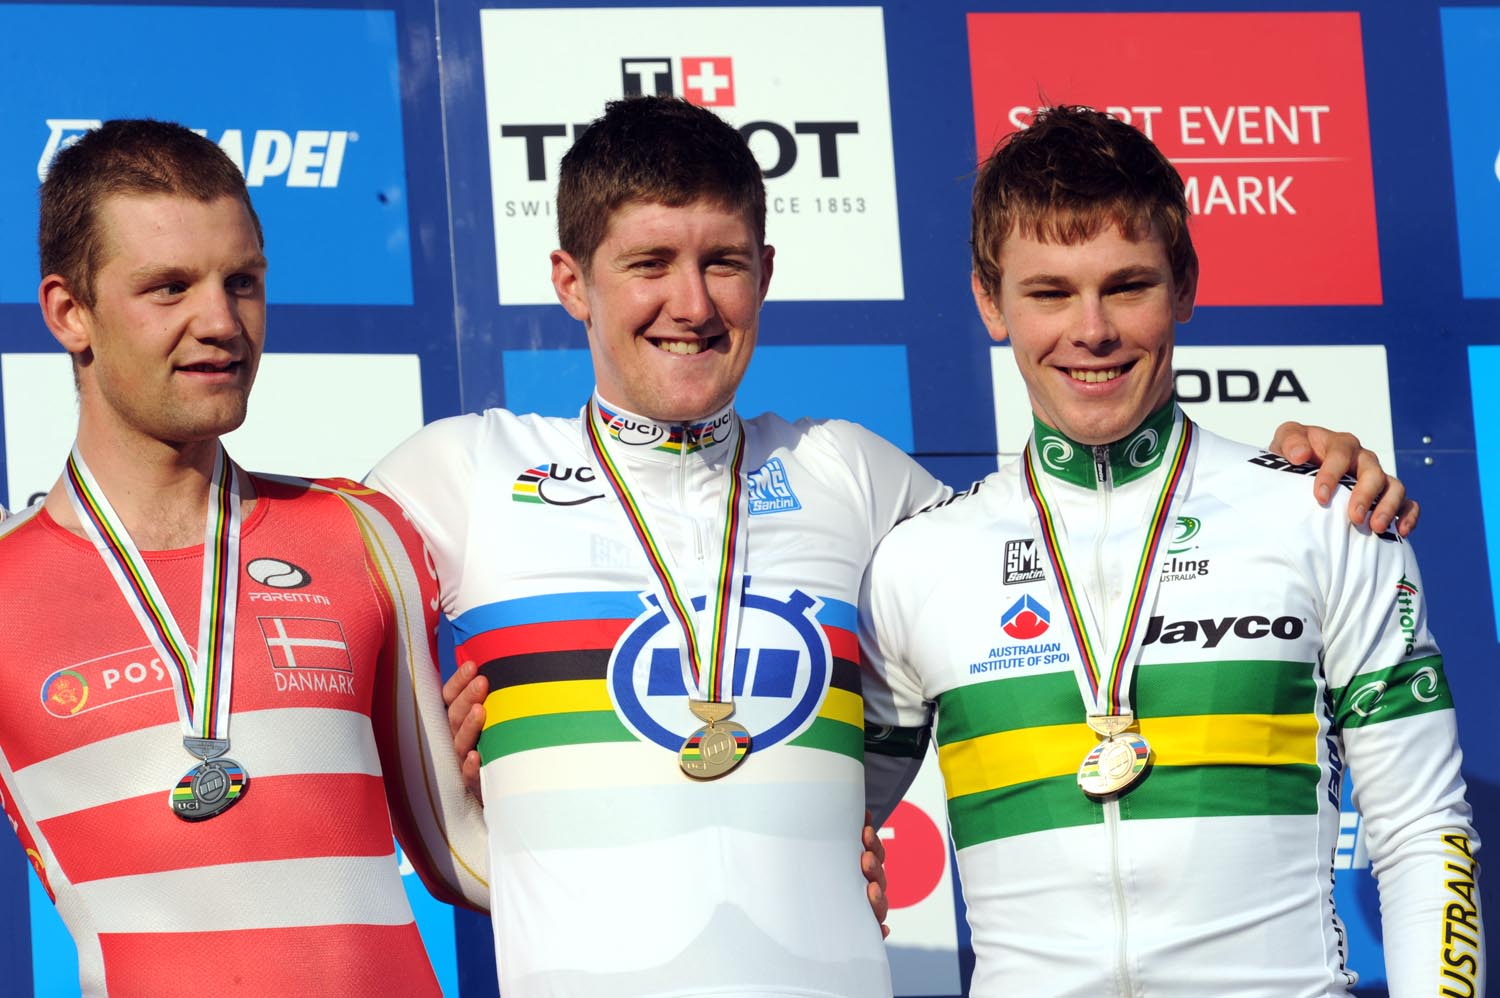 Luke Durbridge wins, under-23 men time trial, Road World Championships 2011